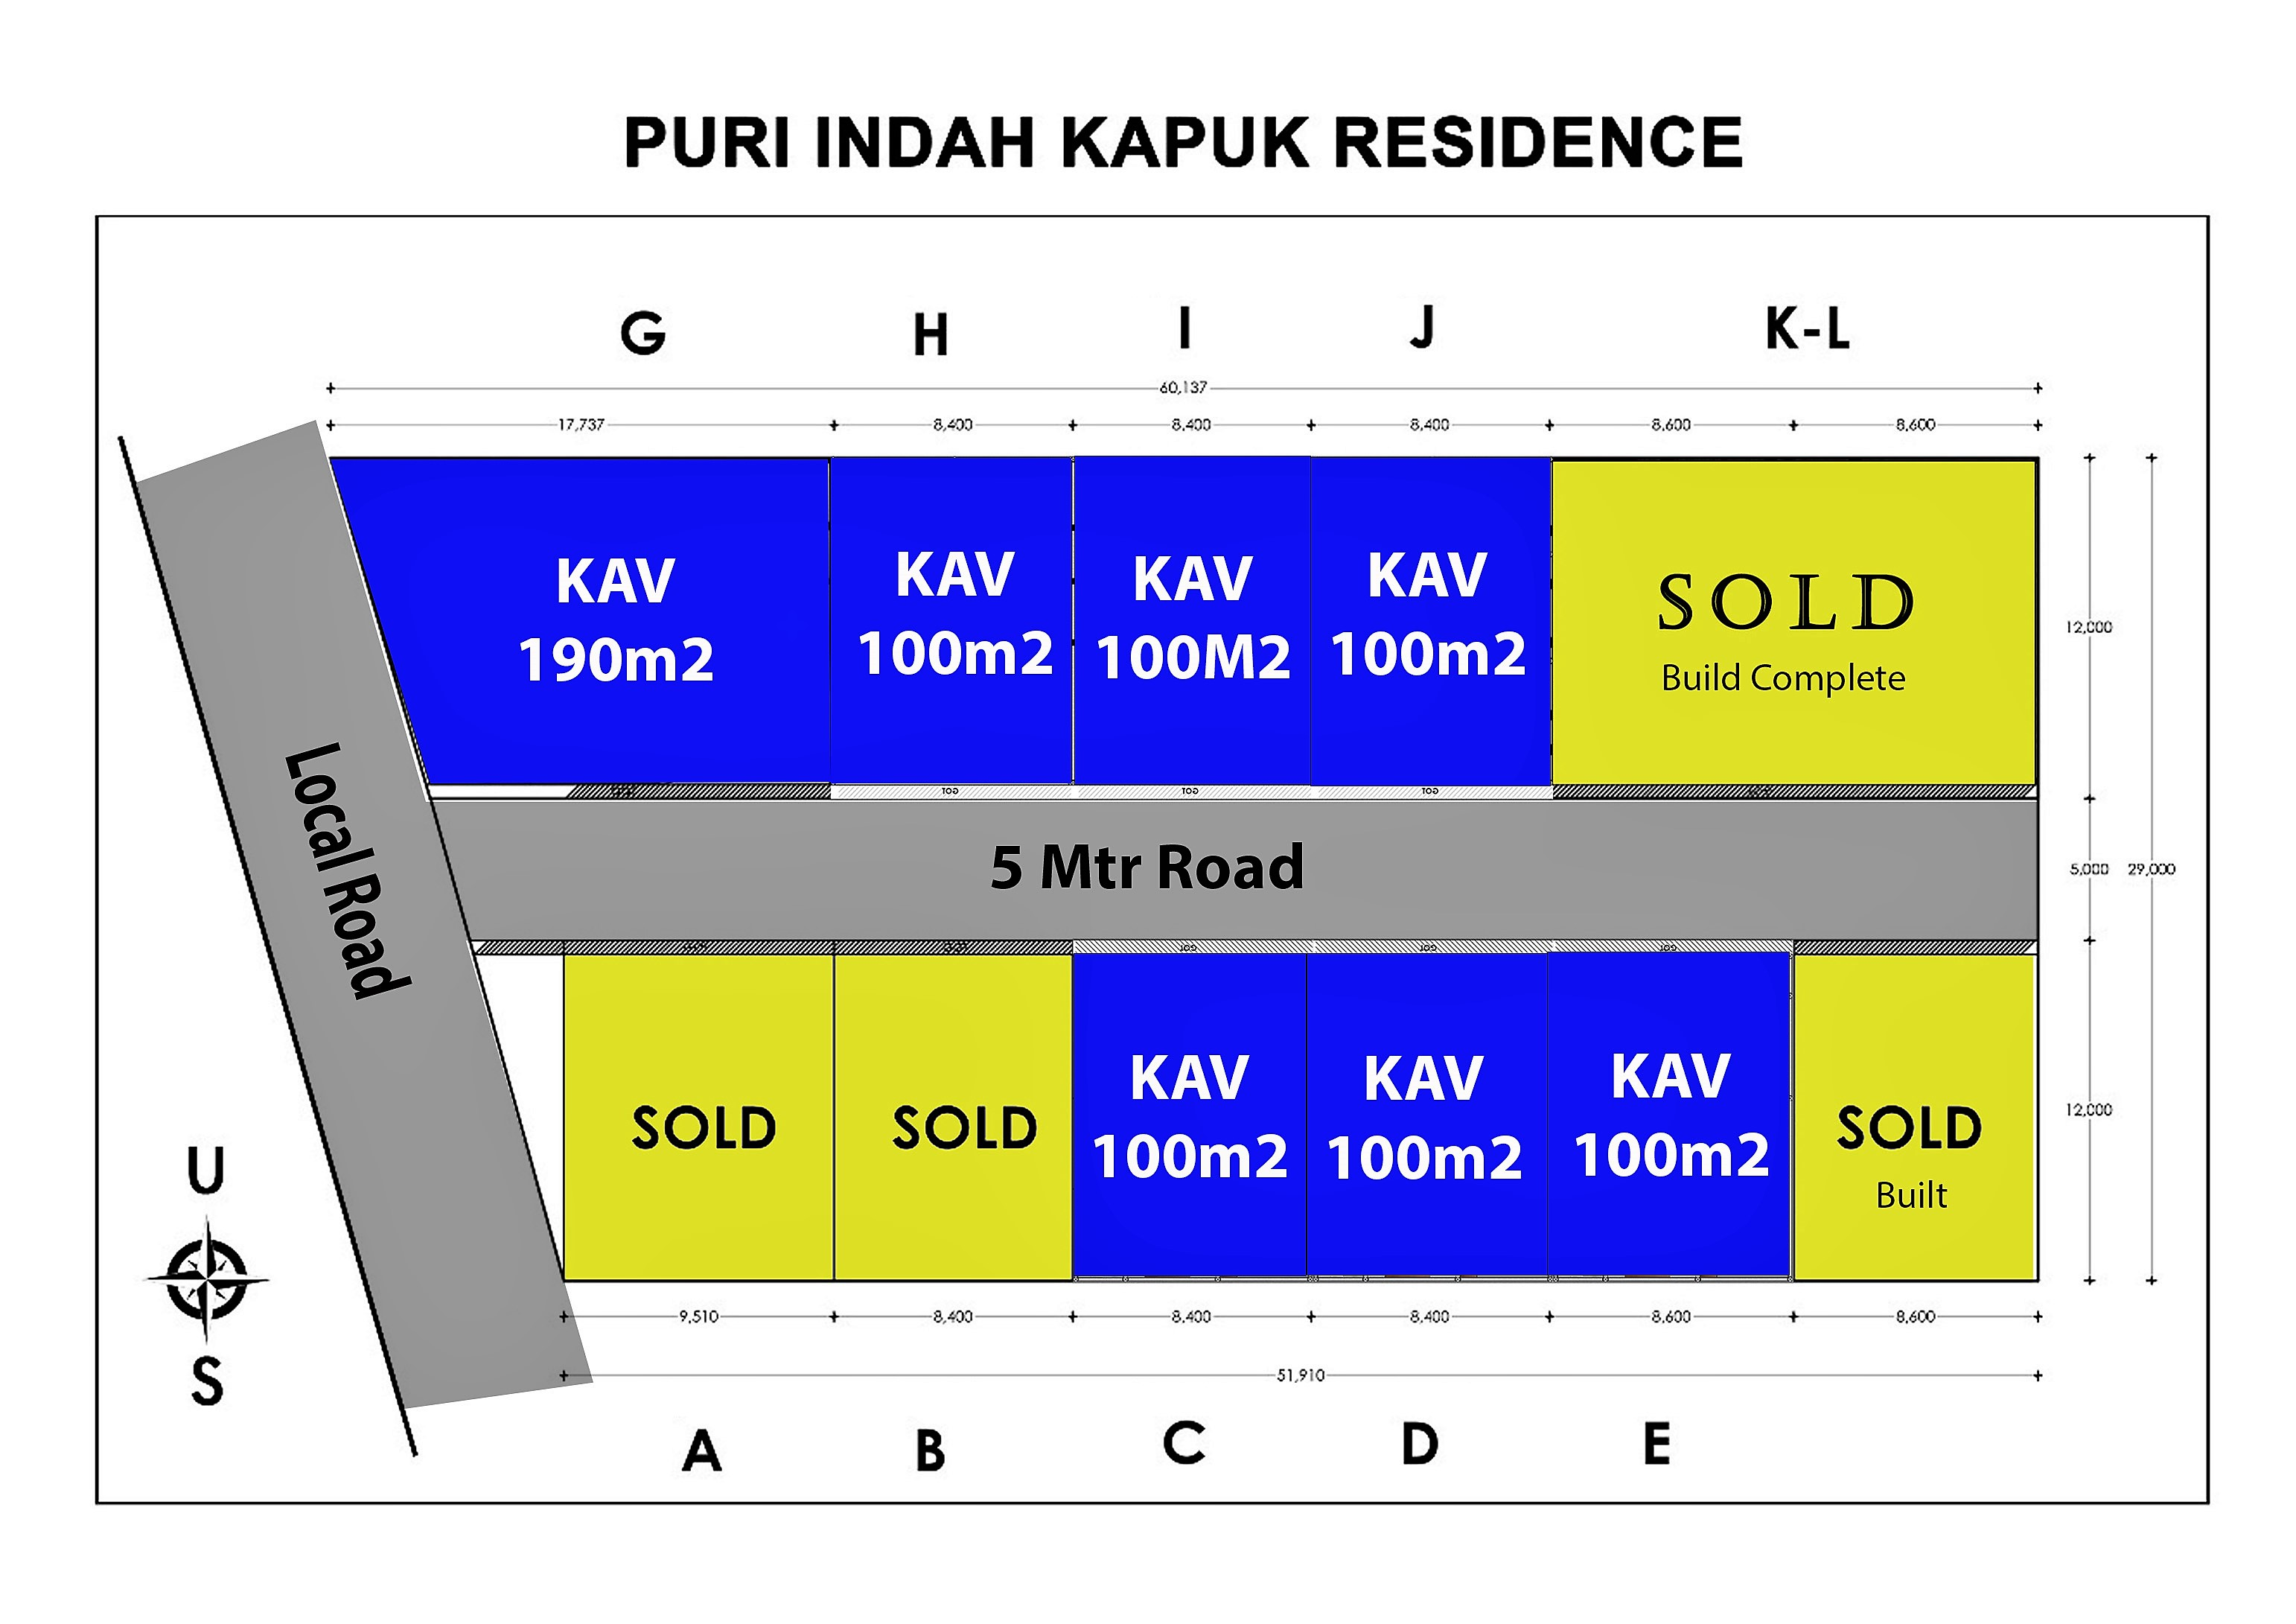 Land Plots (Kavling) Near Great location near GWK